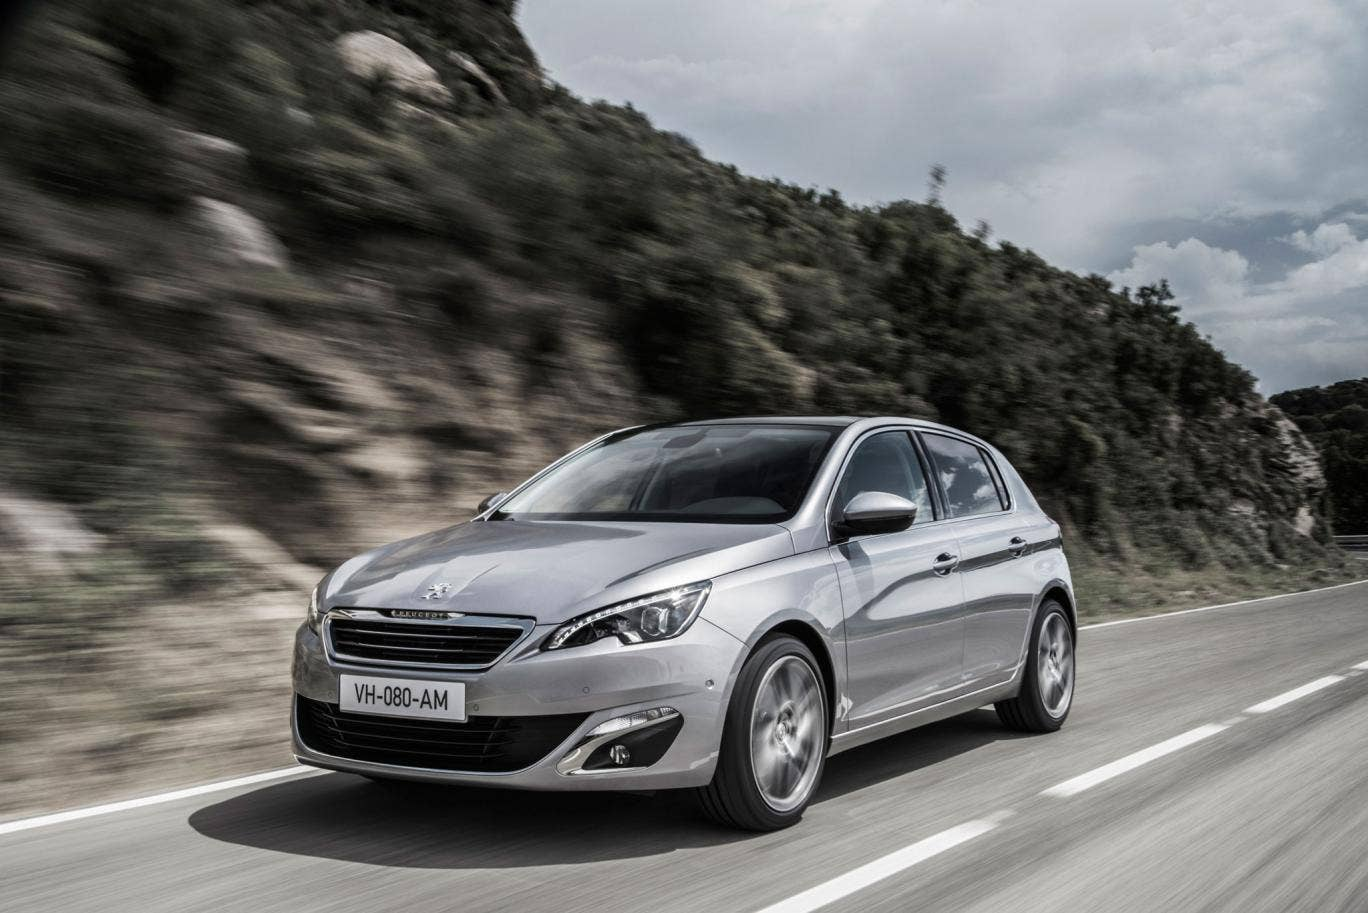 For the sheer interactive pleasure of driving, the new Peugeot 308 trumps the lot